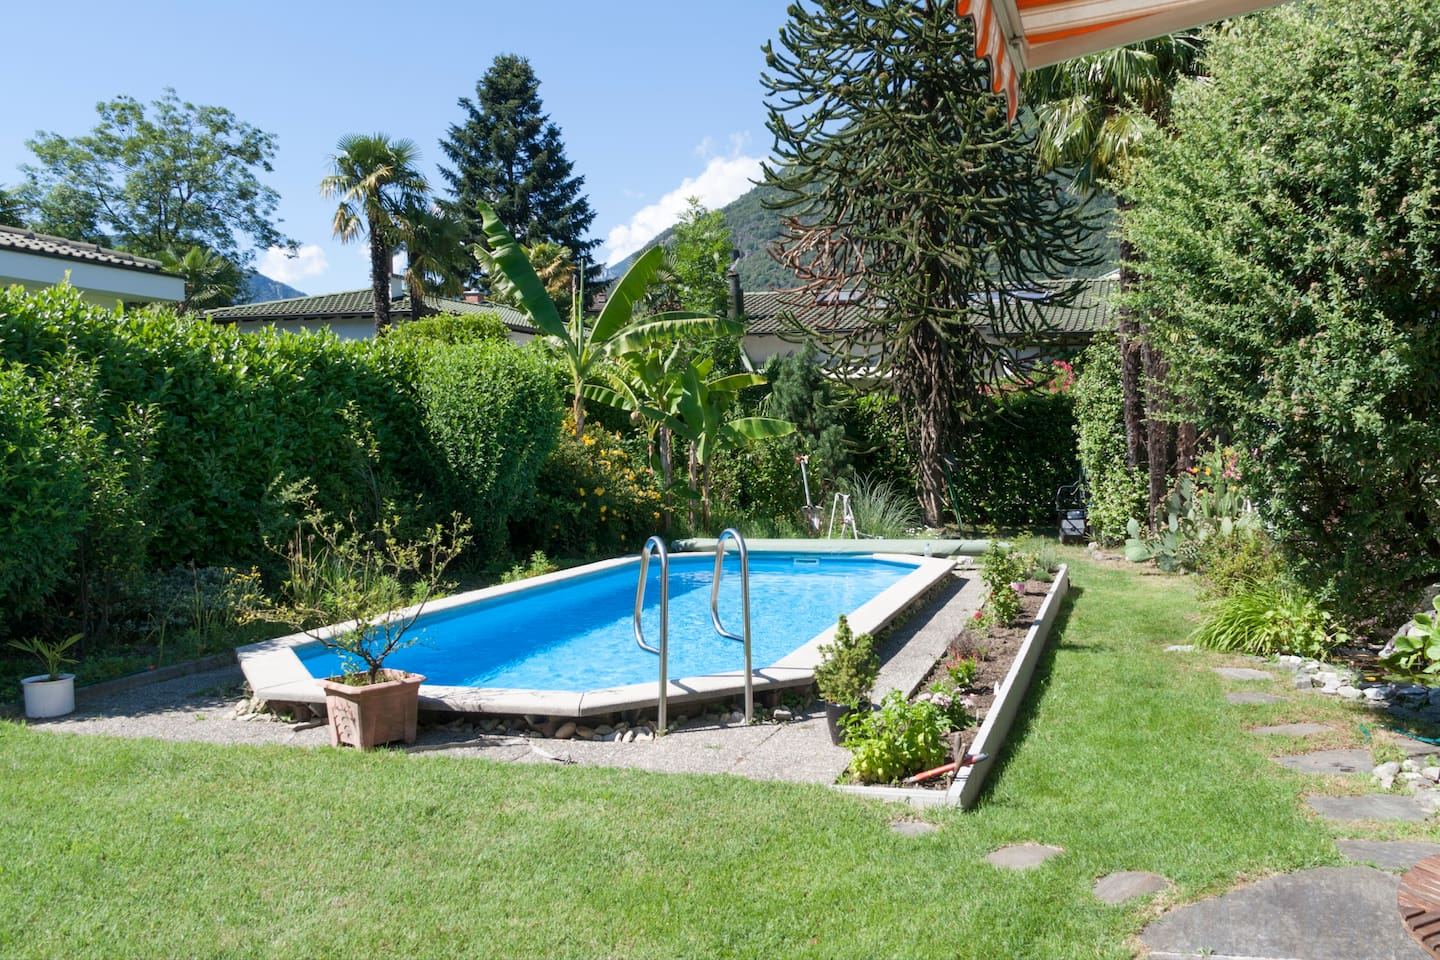 Garden + Pool on Request